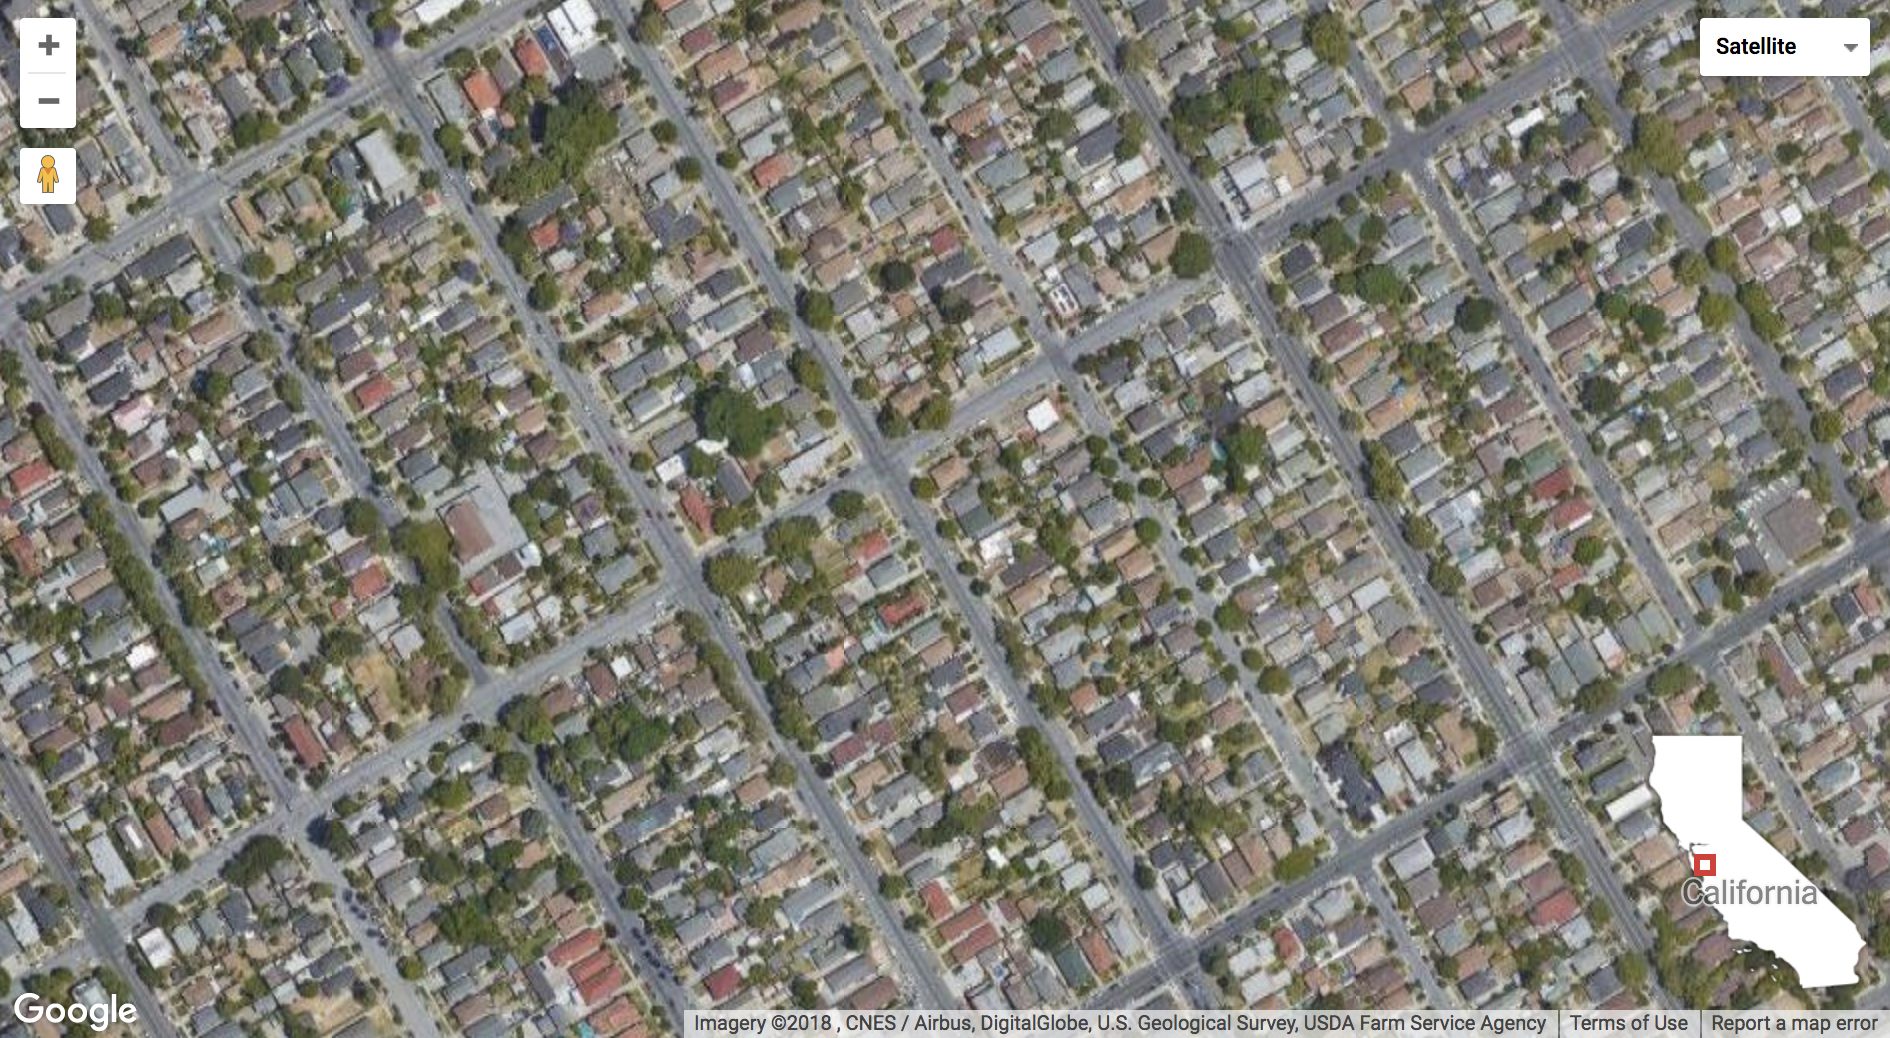 a satellite view shows what census enumerators may miss